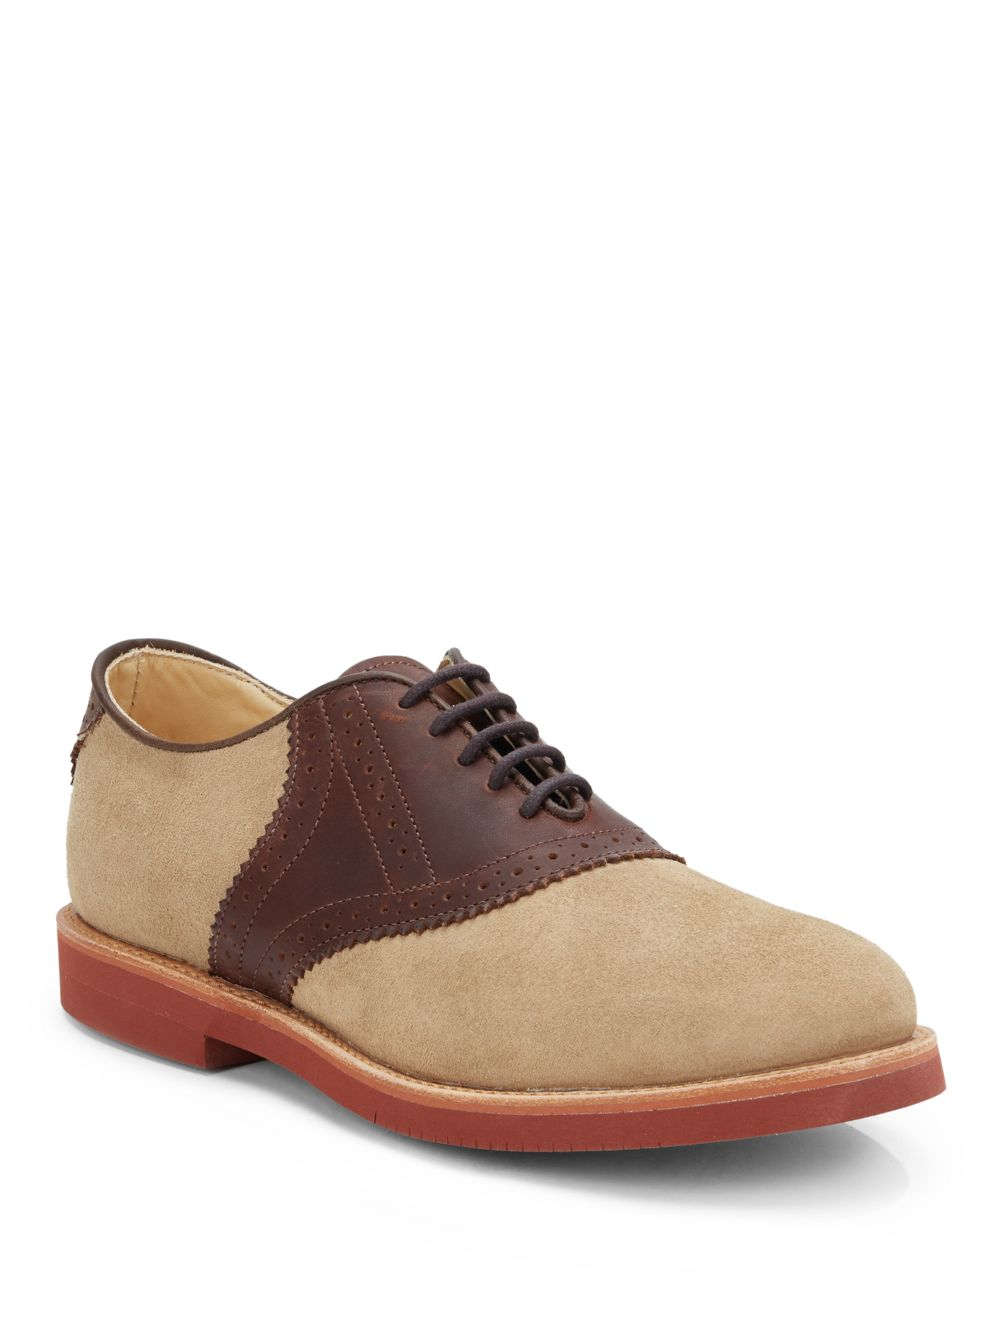 walk suede leather saddle oxford shoes in beige for